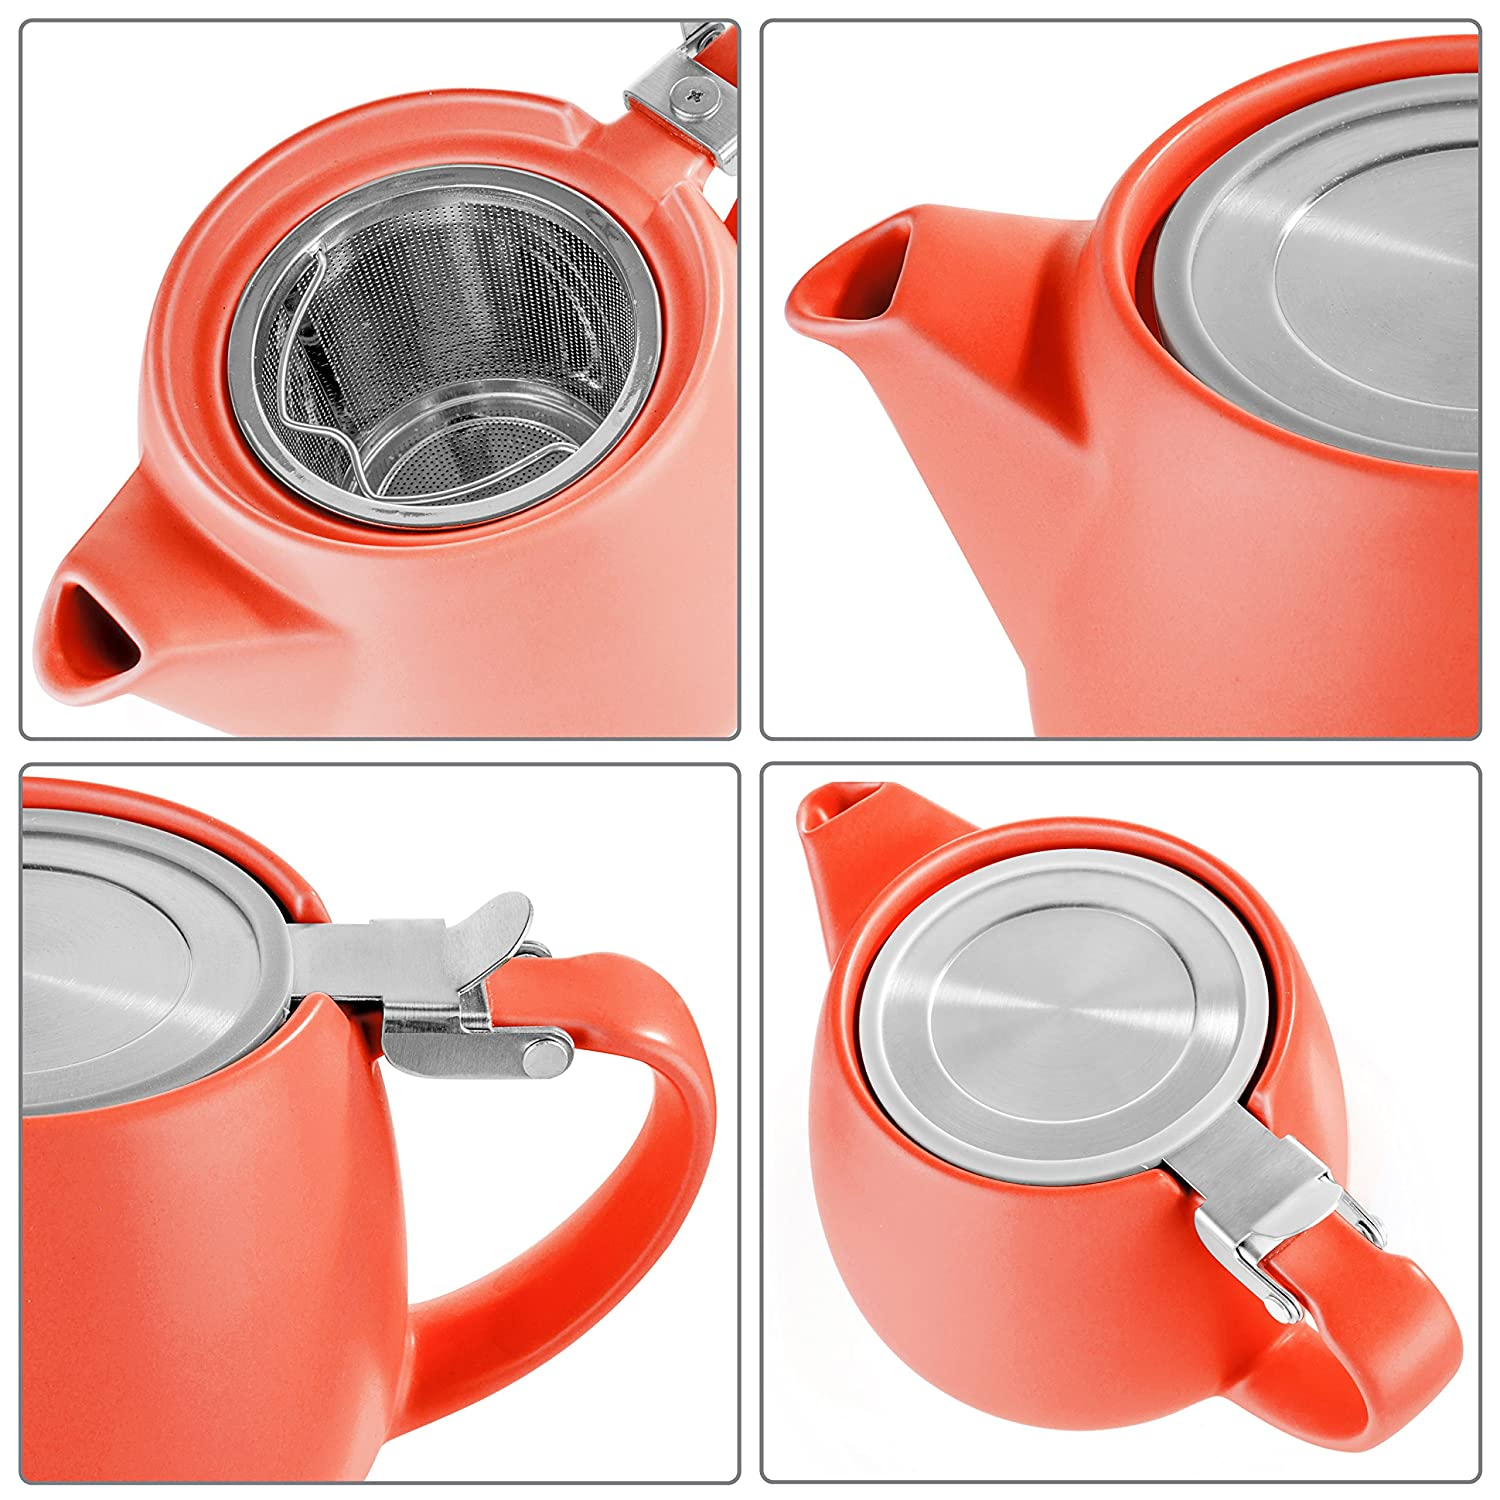 Tealyra - Pluto Porcelain Small Teapot Orange - 18.2-ounce (1-2 cups) - Matte Finish - Stainless Steel Lid and Extra-Fine Infuser To Brew Loose Leaf Tea - Ceramic Tea Brewer